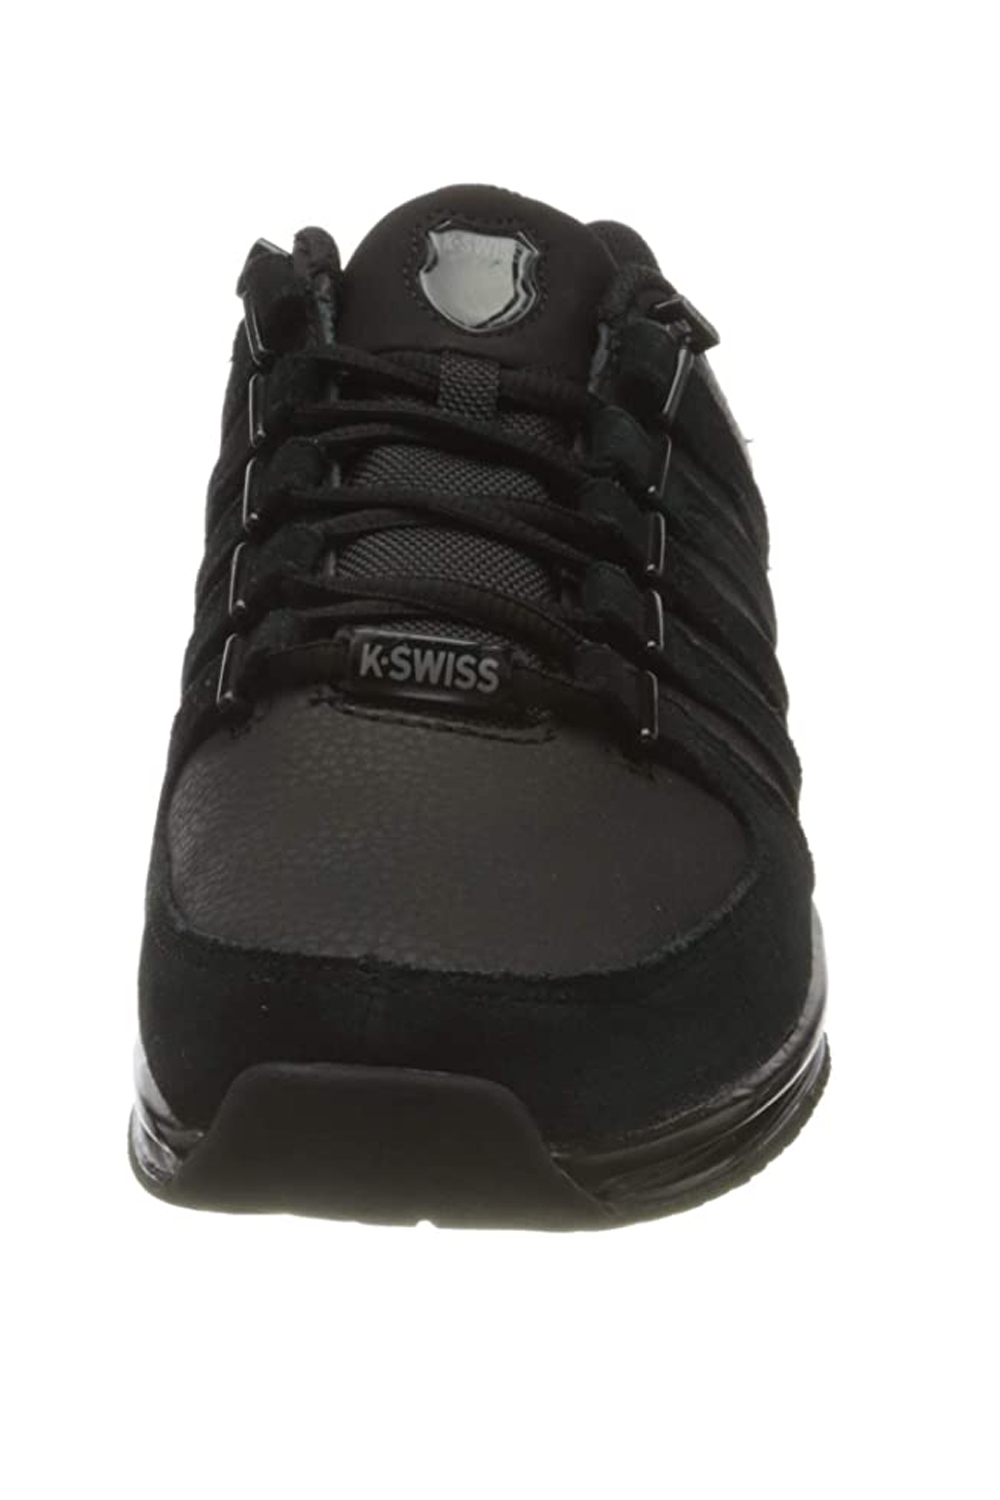 thumbnail 5 - K-Swiss Mens Comfortable Low Top Classic Leather Suede Rinzler Trainers Sneakers